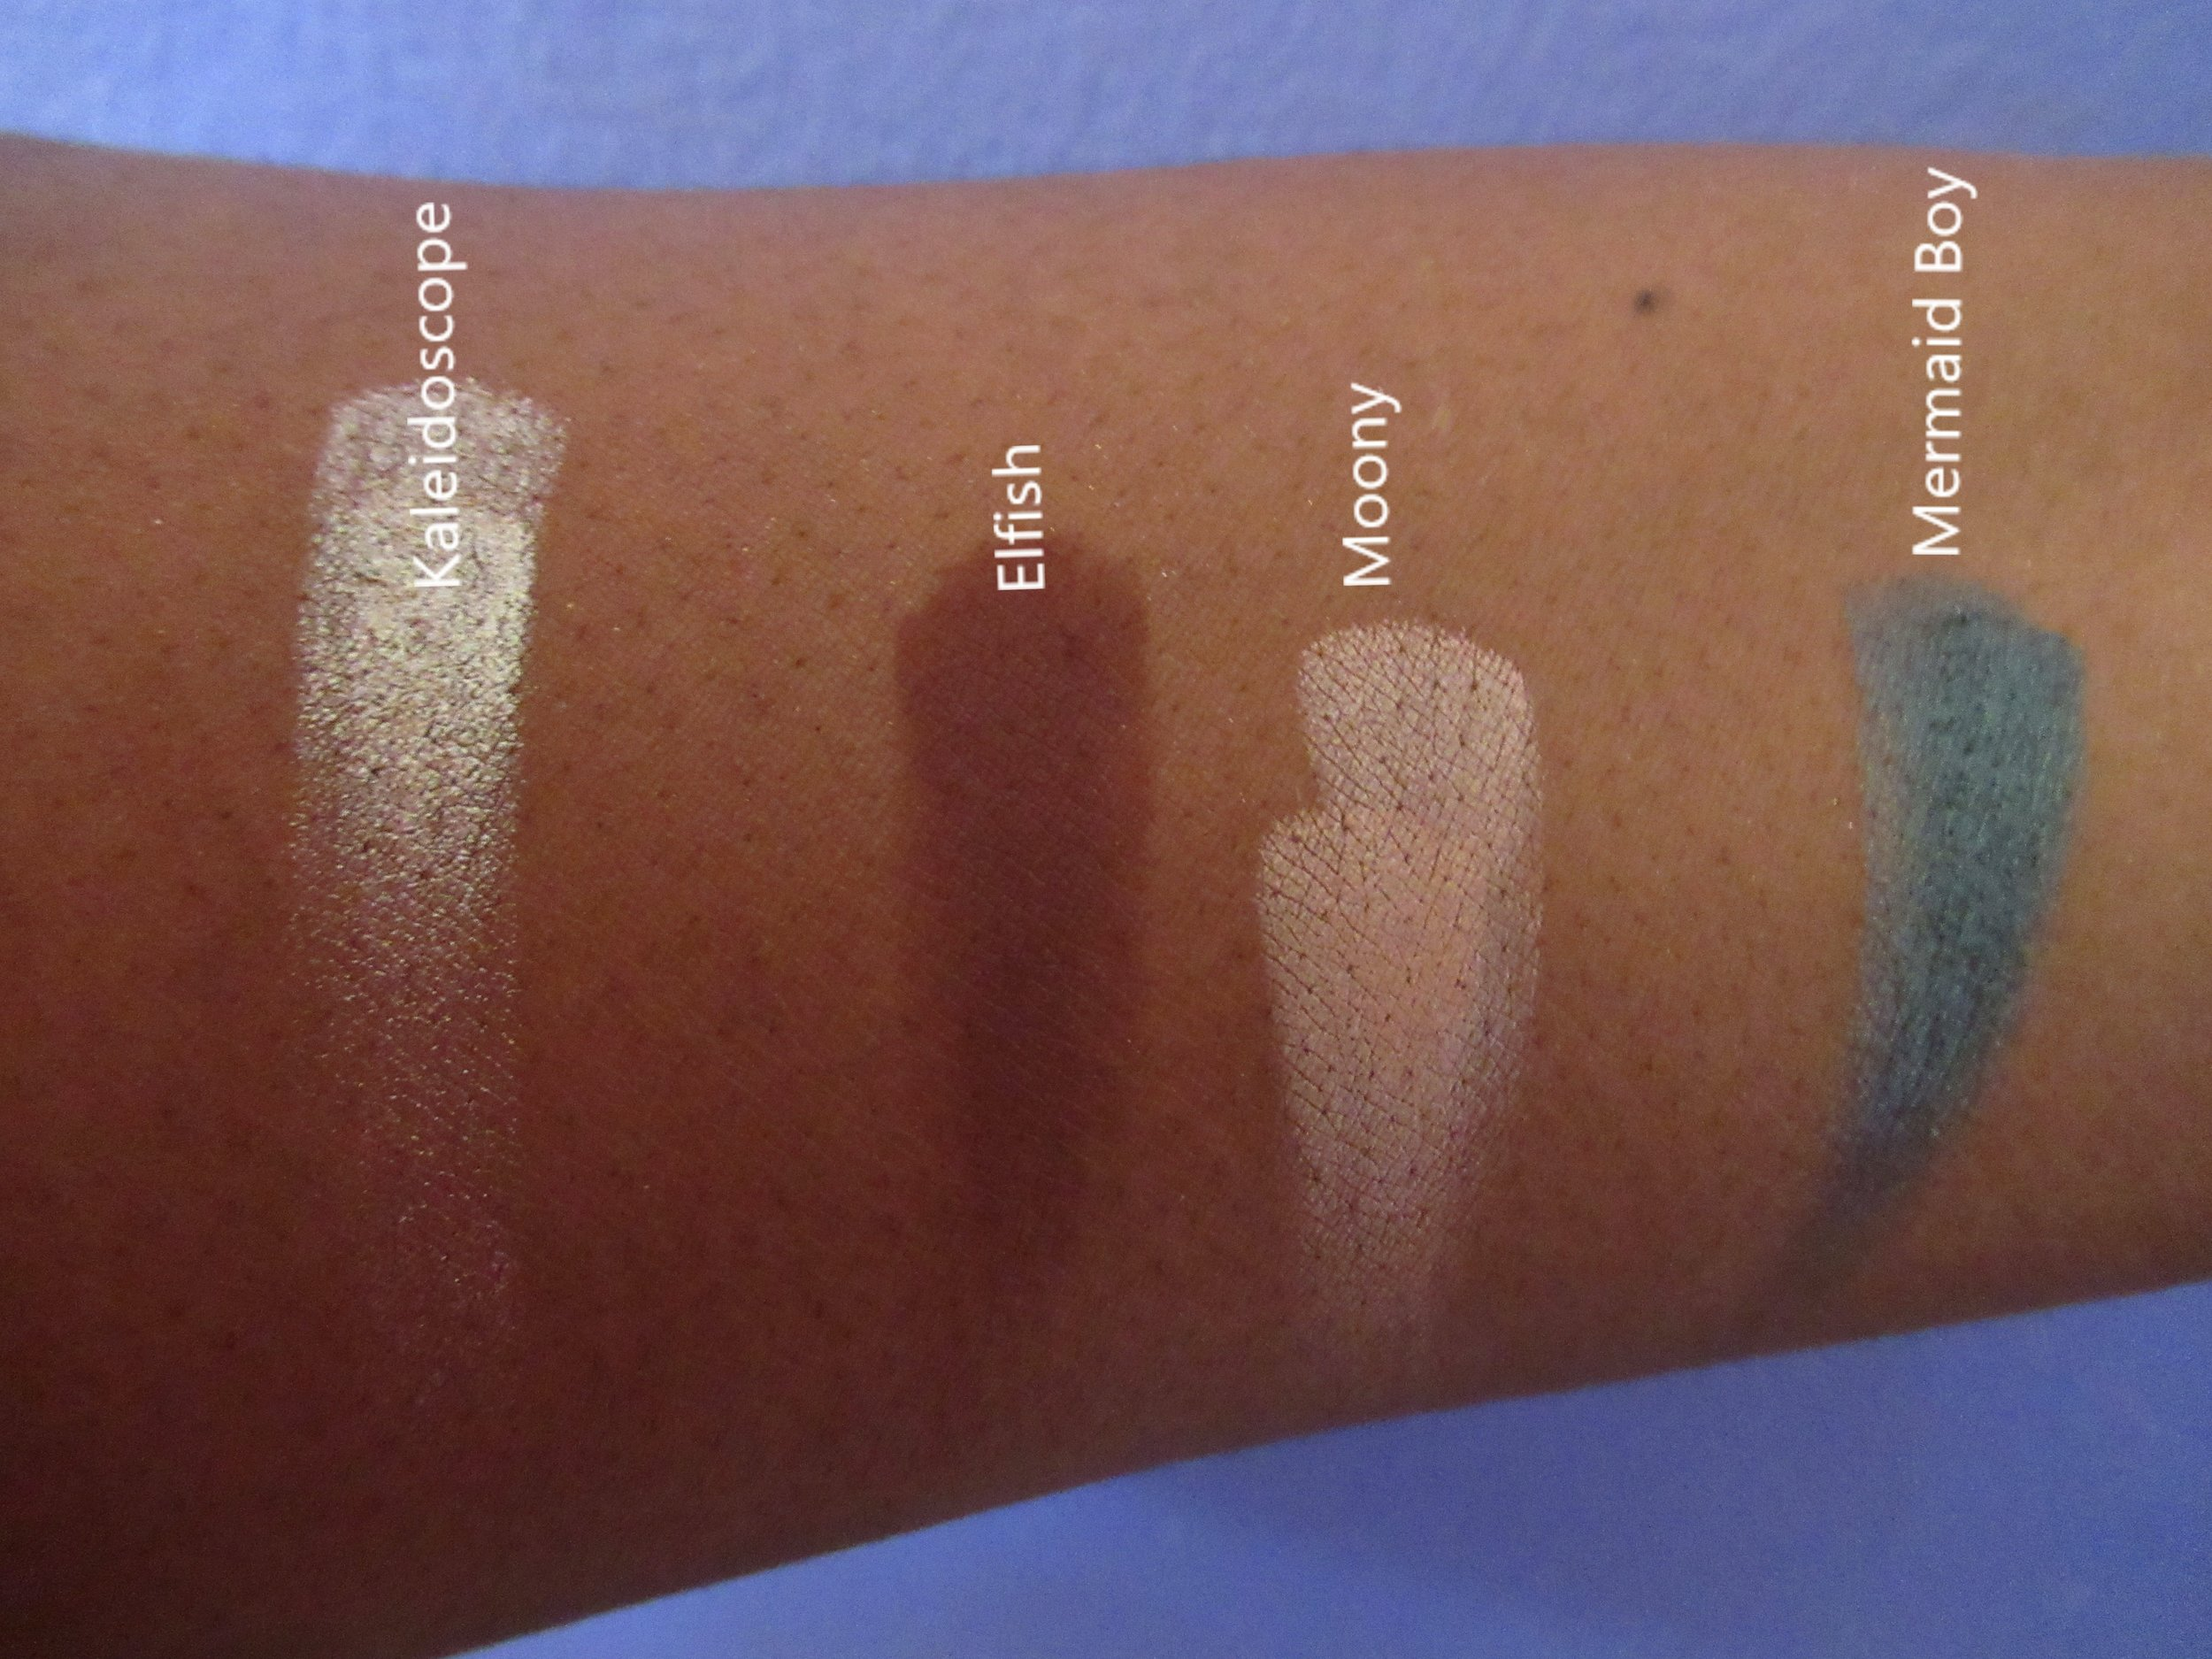 hleen Lights x ColourPop Dream St. Swatch and Review